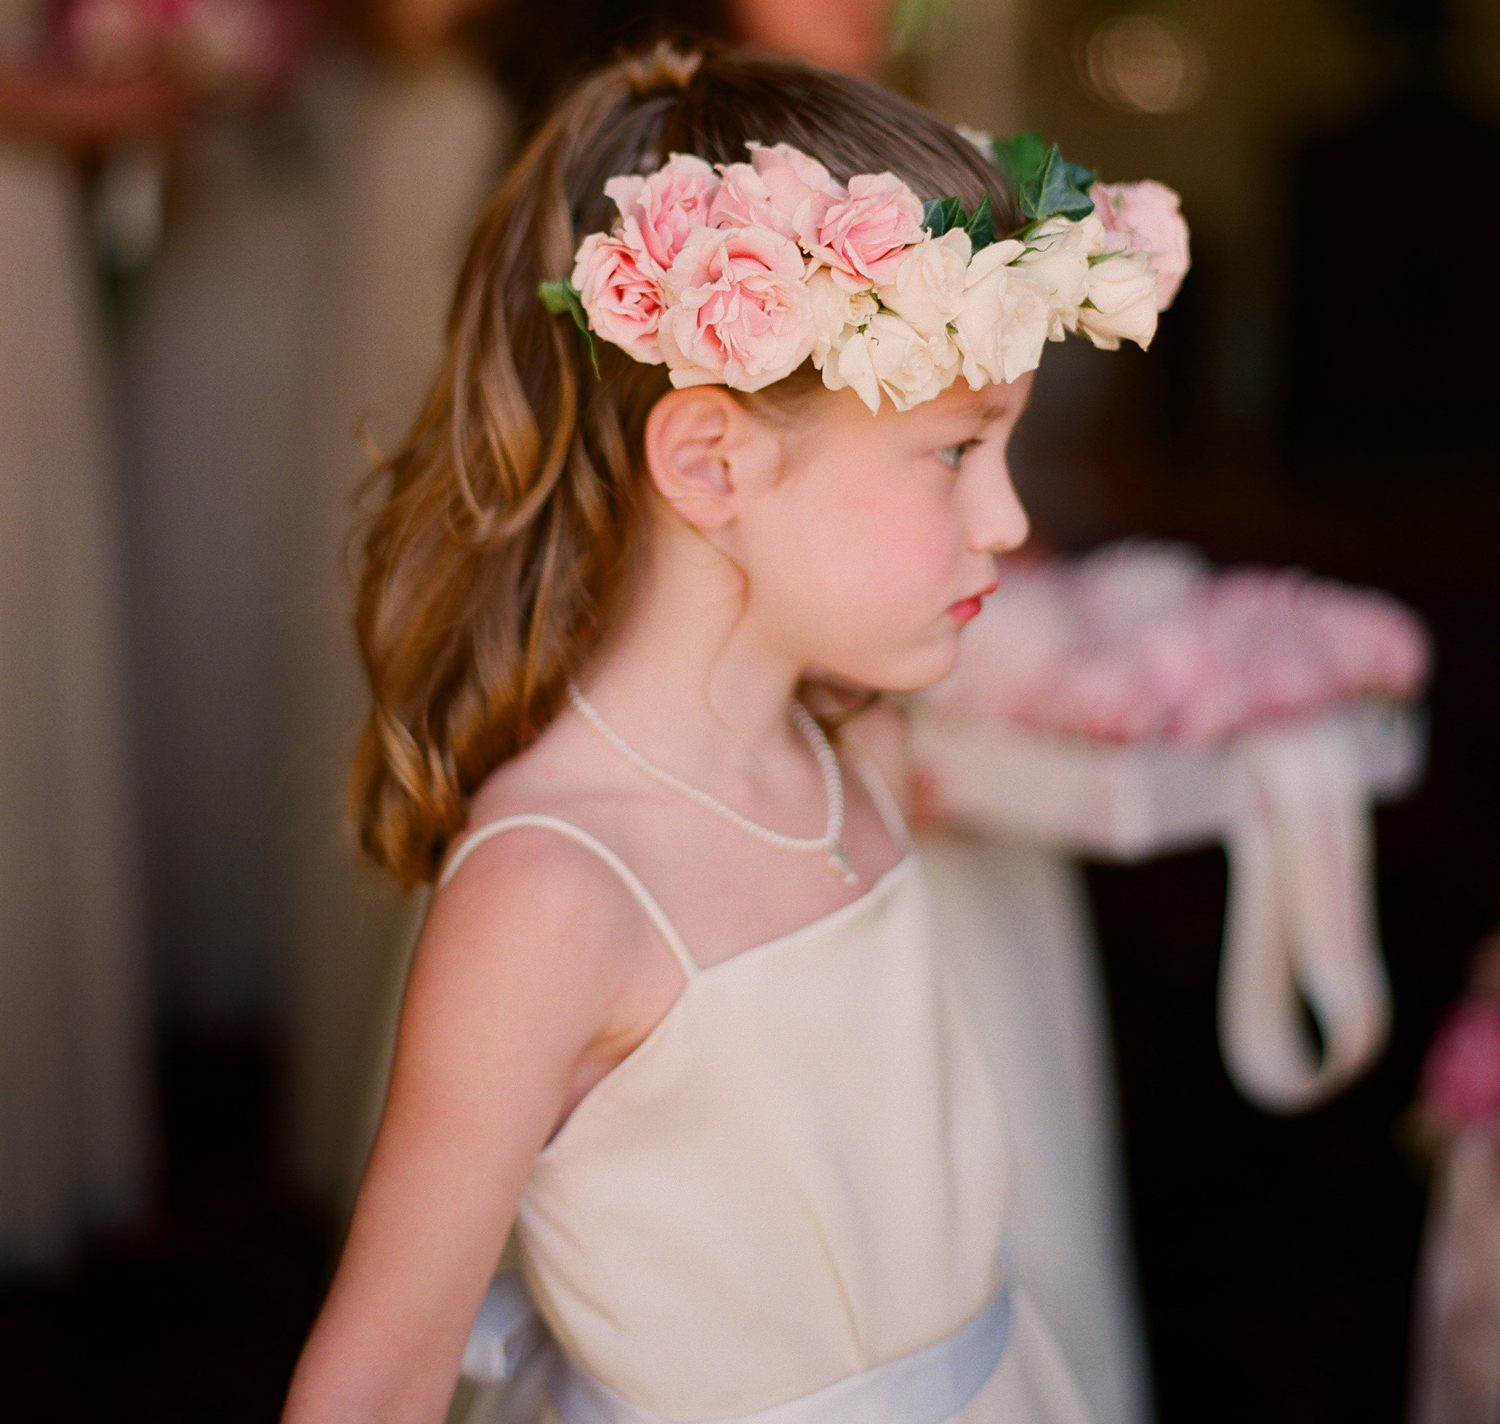 Flower girl style 15 flower crowns to complete her look inside pink flower crown izmirmasajfo